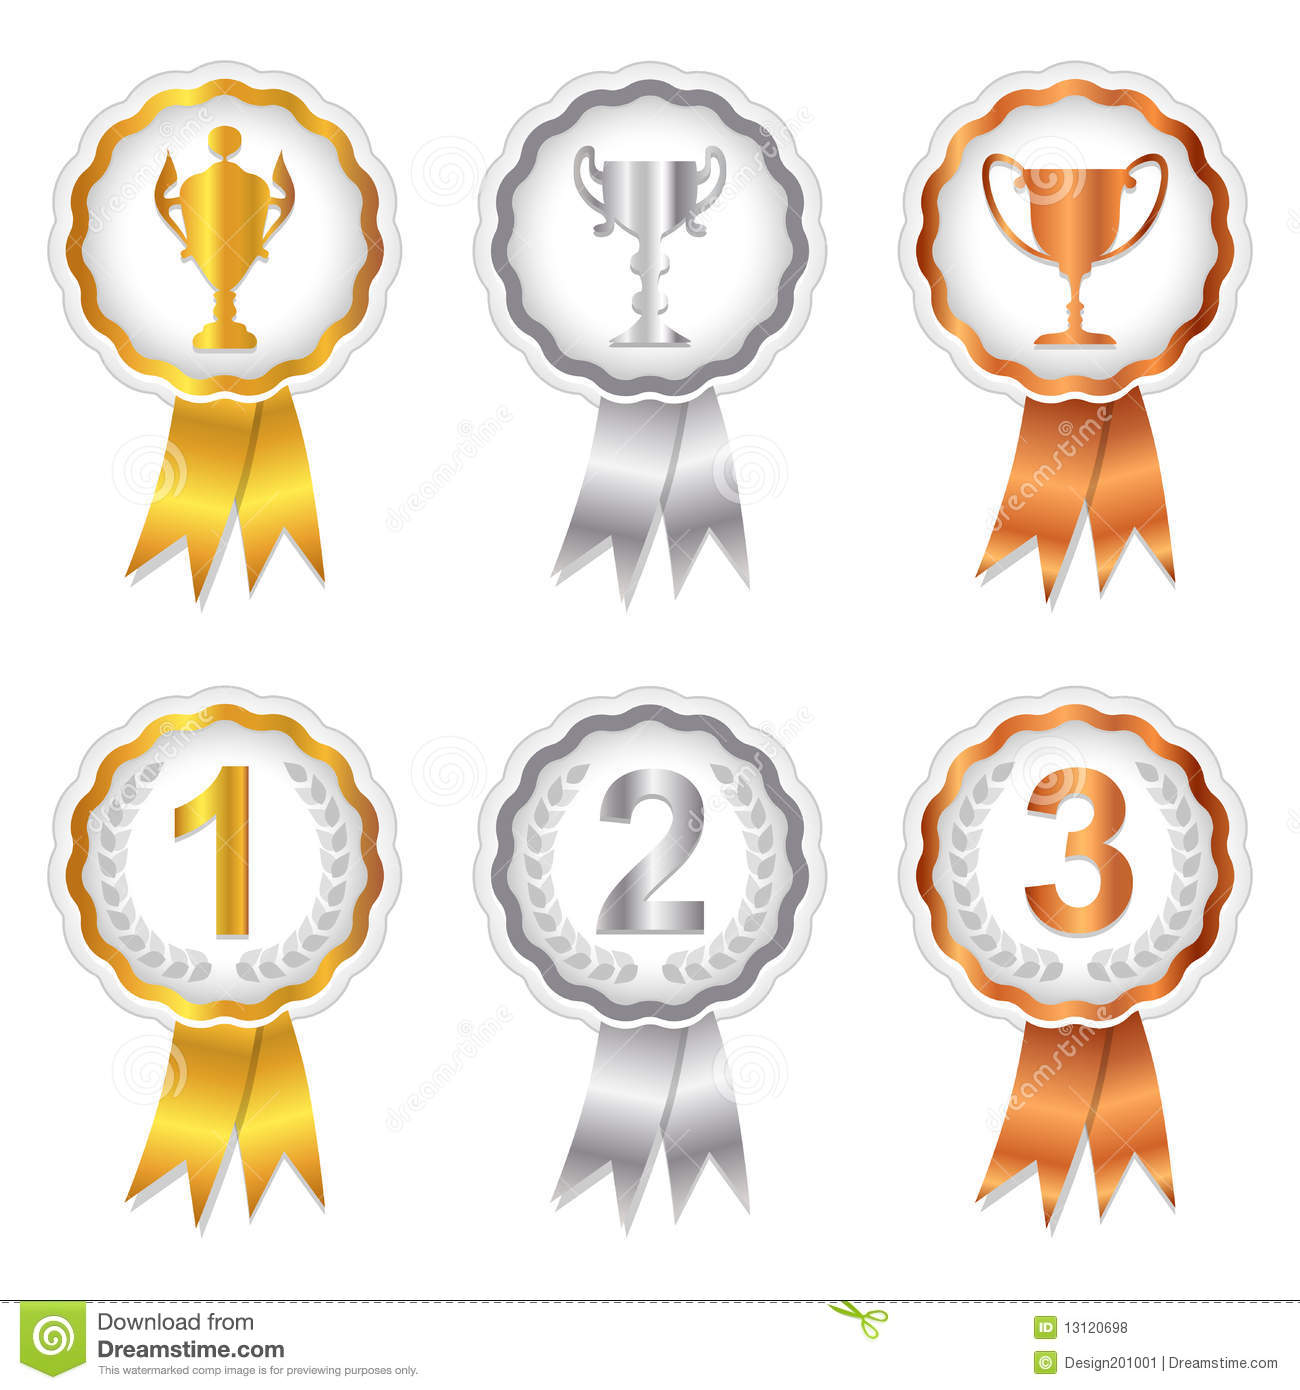 1st 2nd 3rd Place Clipart